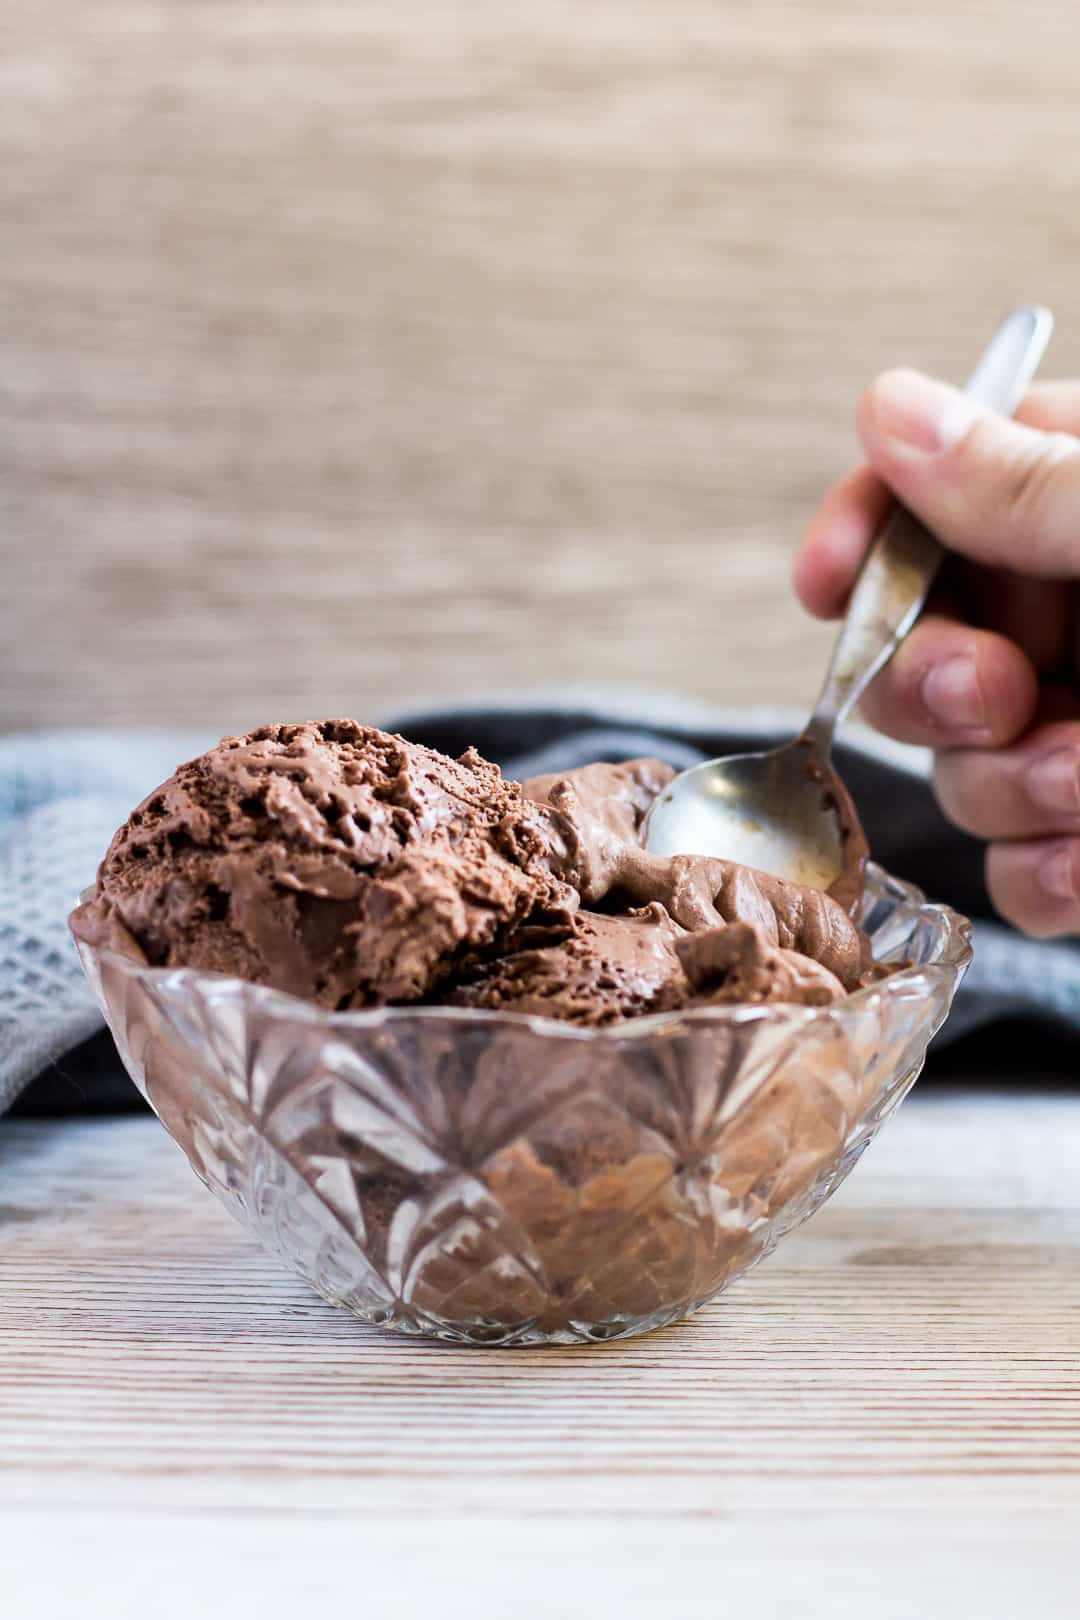 Scoops of No-Churn Double Chocolate Ice Cream in a small glass bowl with a spoon.